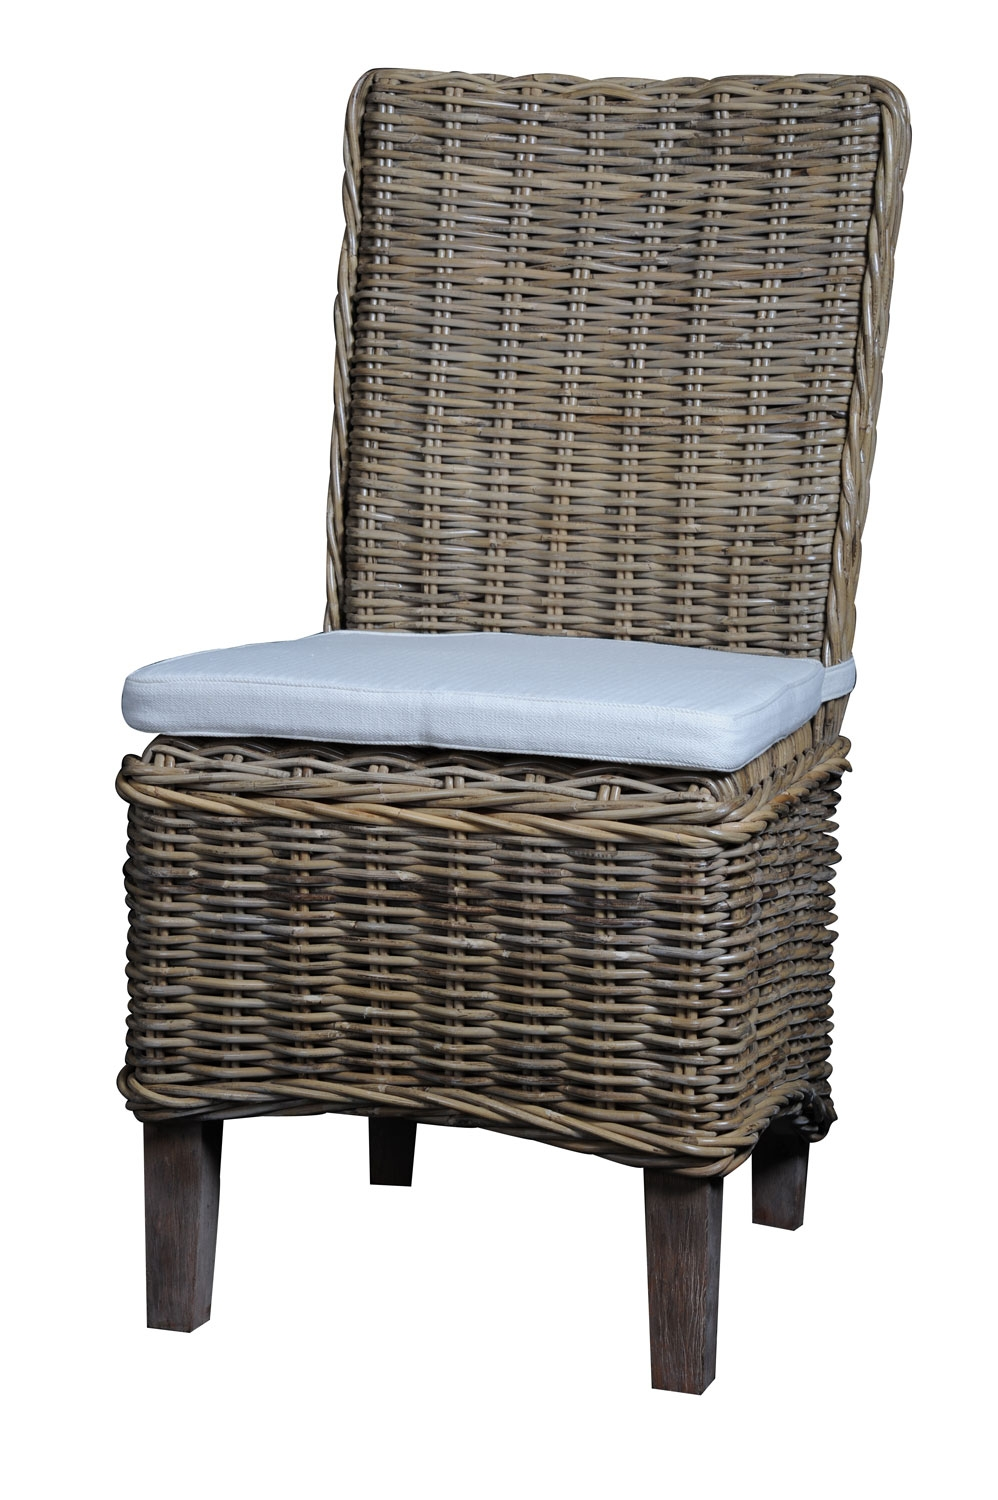 Image of: gray wicker dining chairs